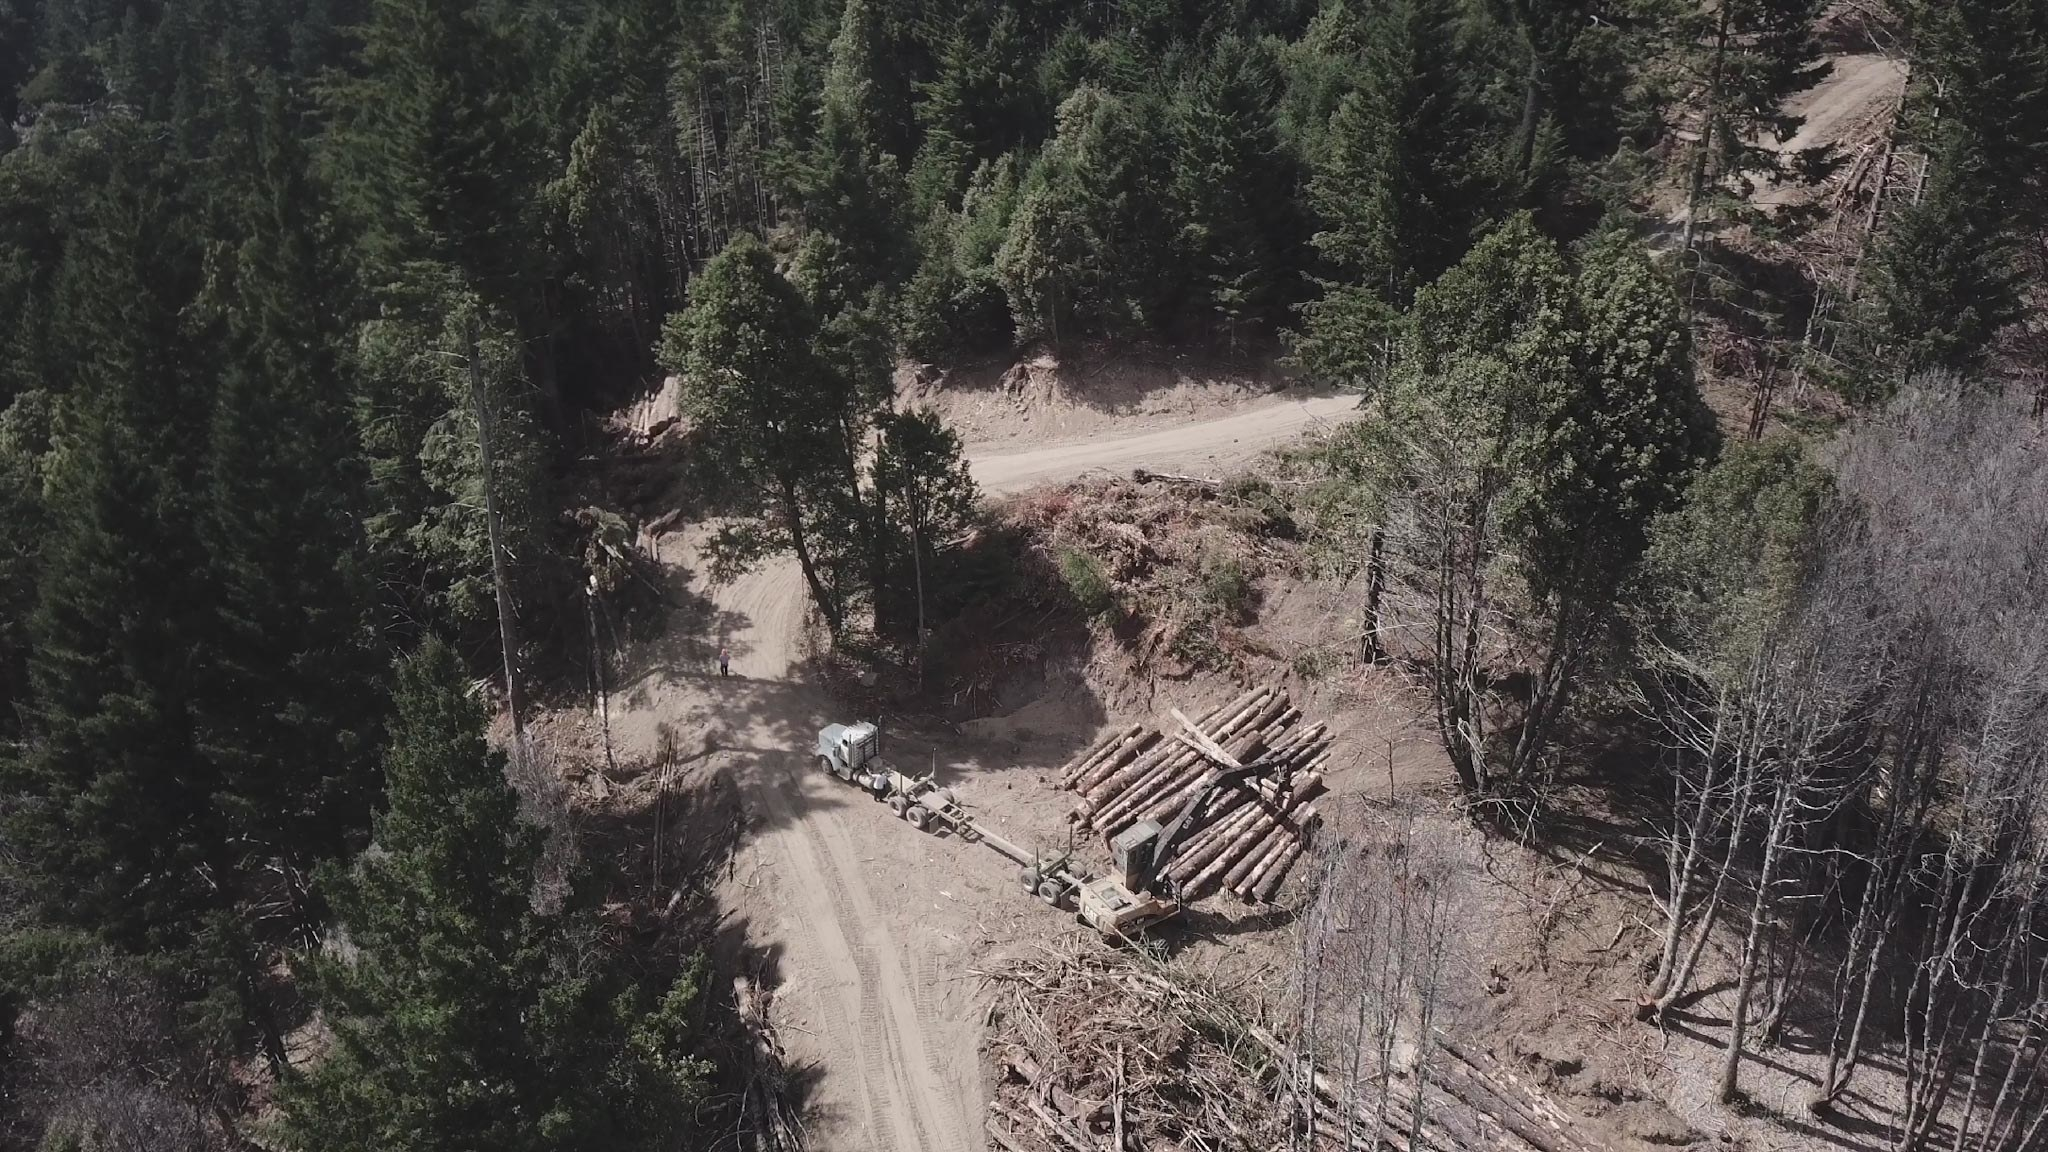 Logs are seen besides a road in an overhead shot